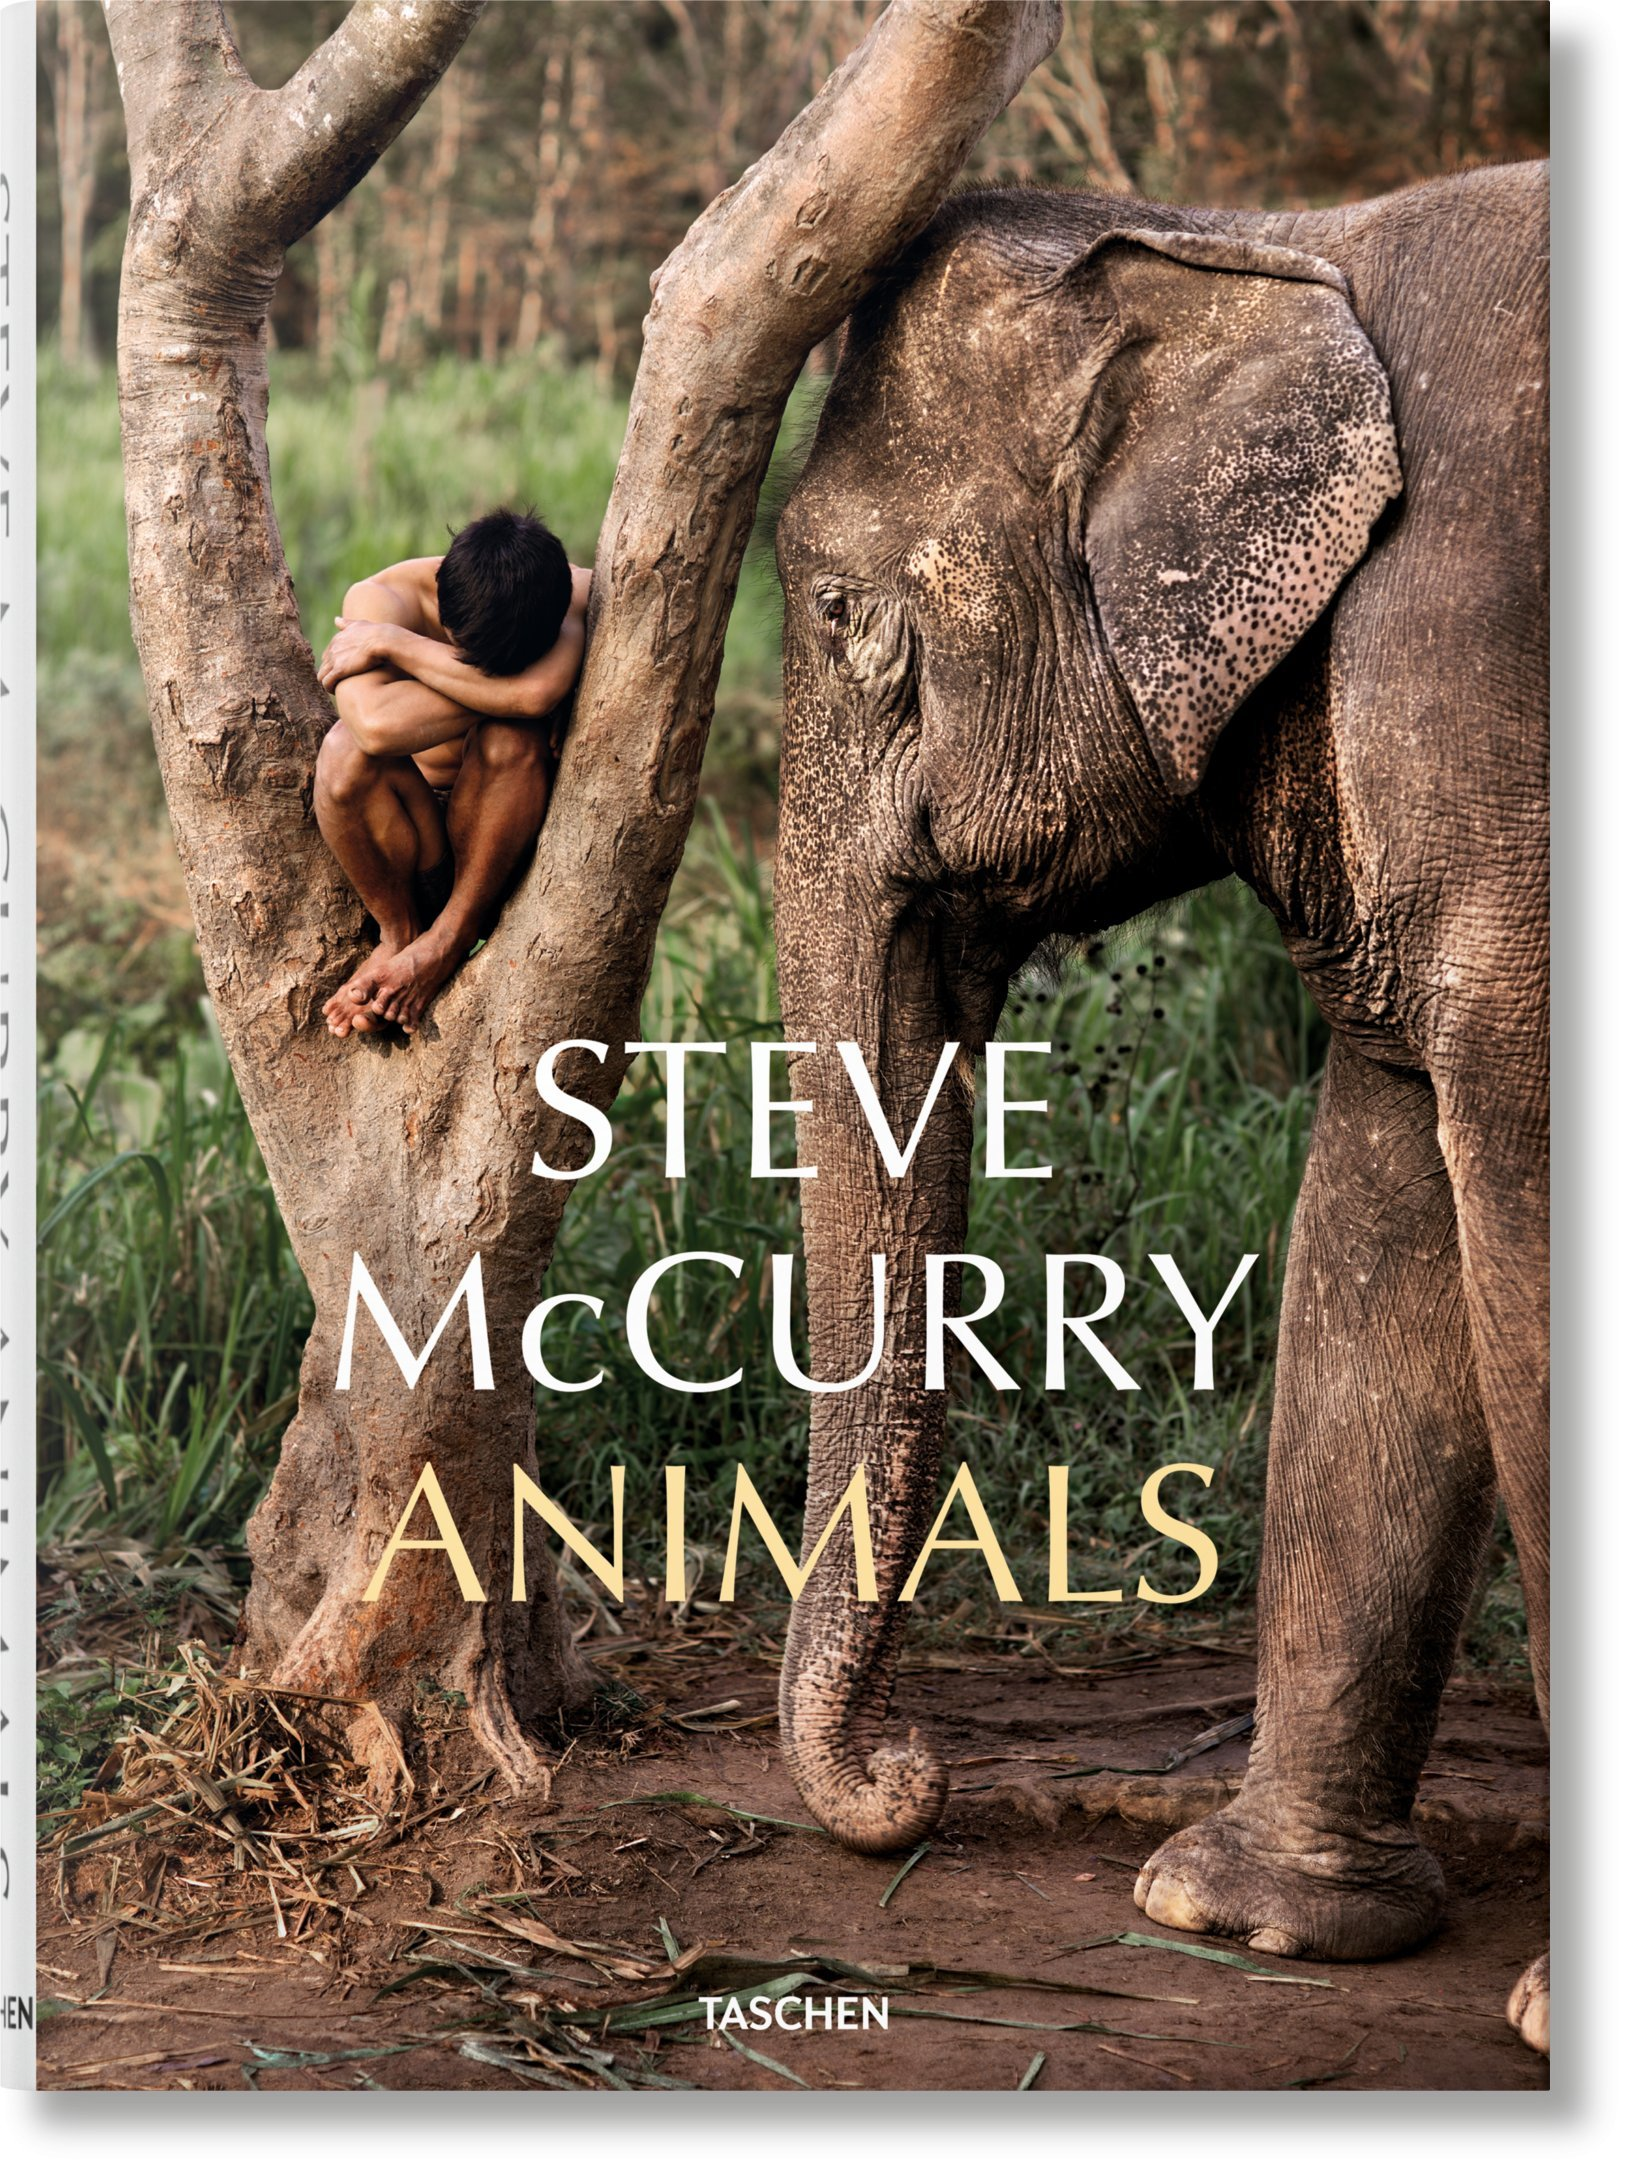 fo-mccurry_animals-cover_05349